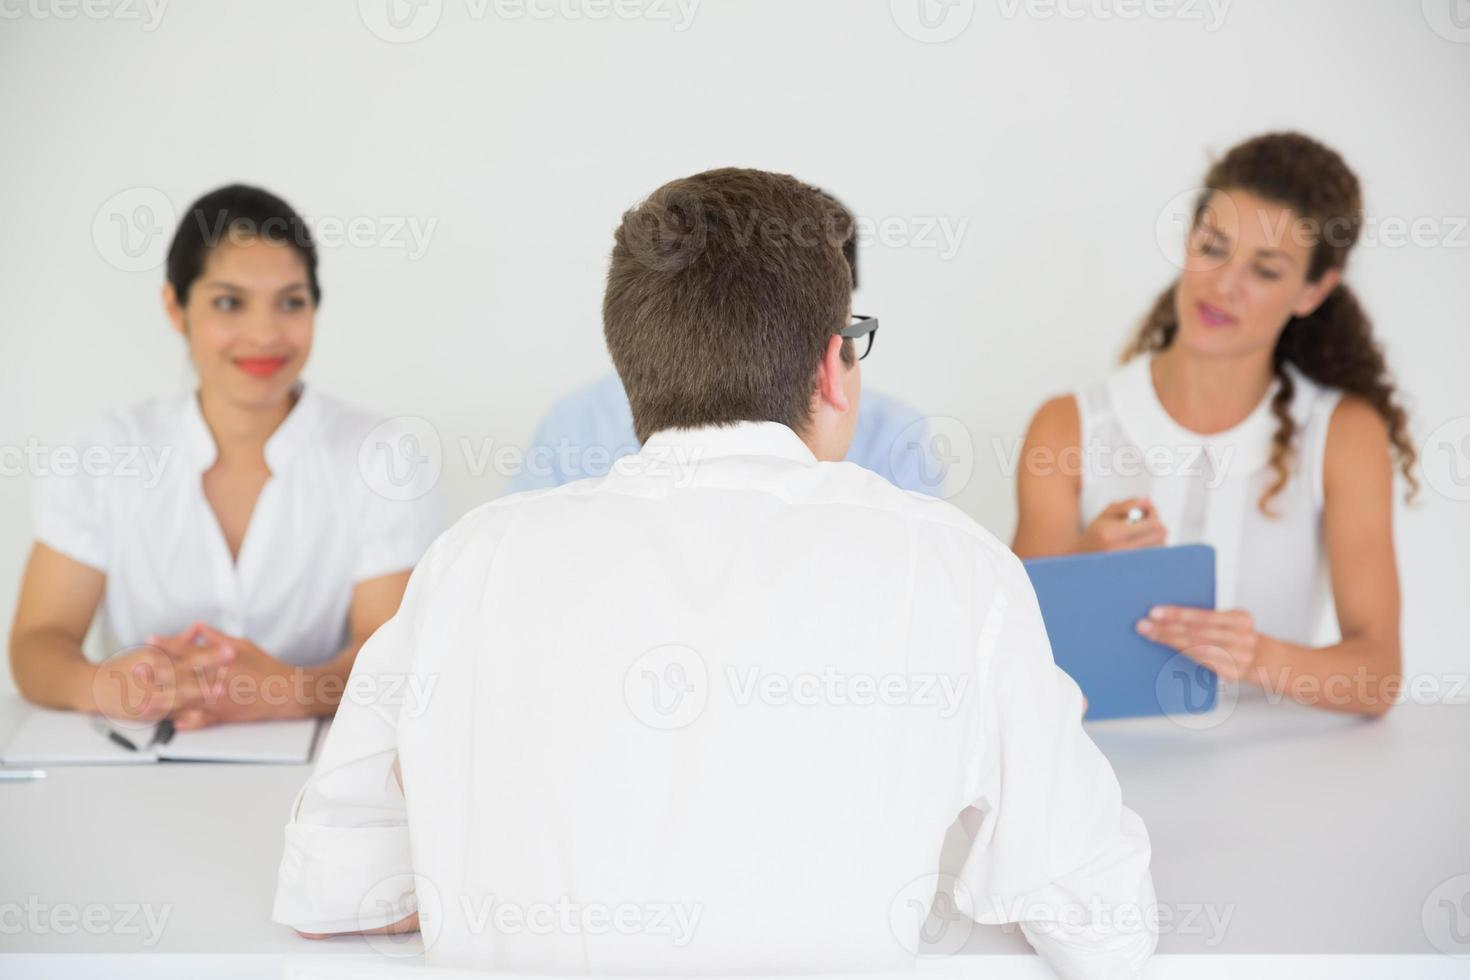 Man being interviewed by business people photo